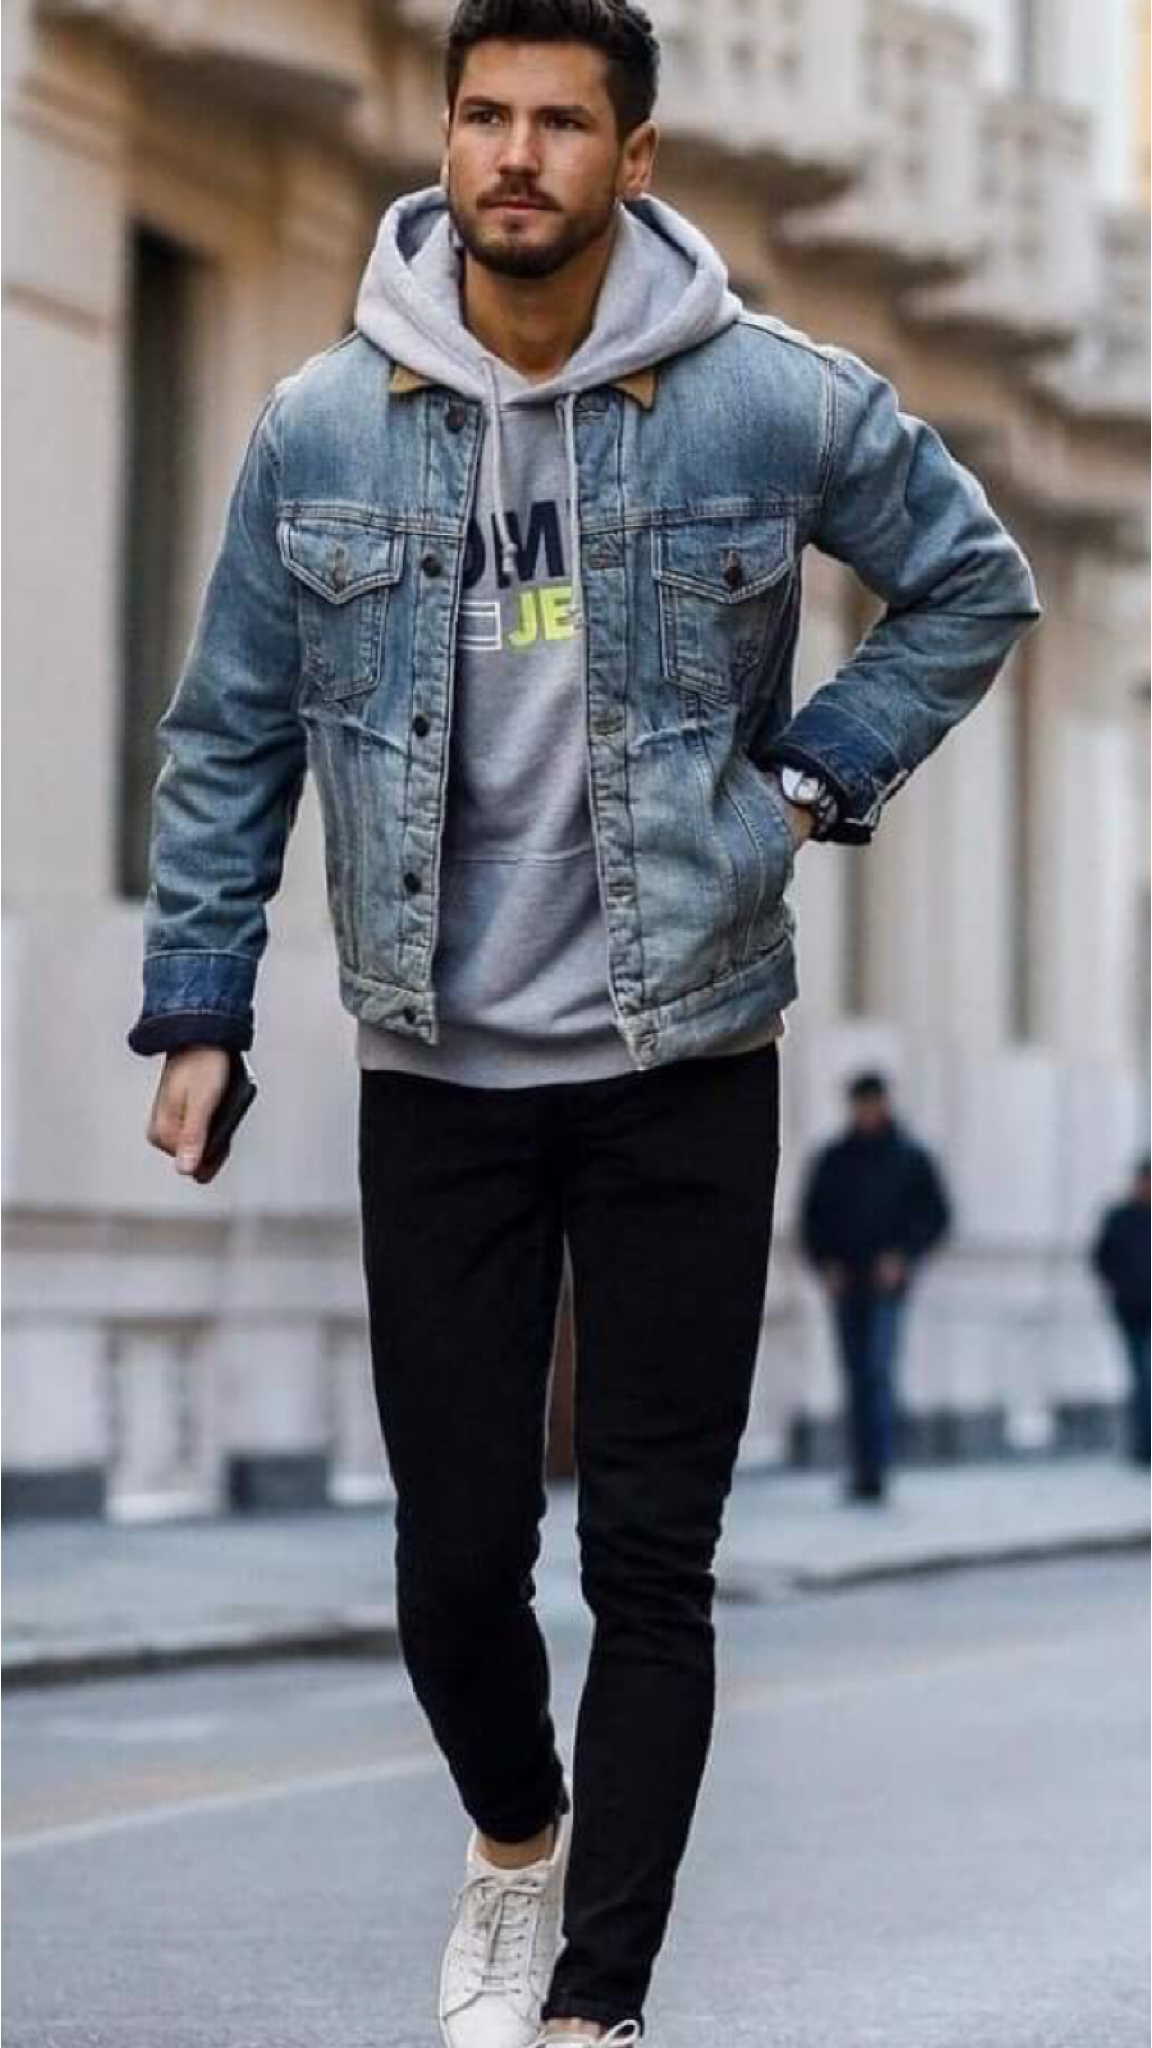 12 Amazing Hoodie Outfits For The Spring Mr Streetwear Magazine Denim Jacket Men Outfit Jean Jacket Outfits Men Mens Joggers Outfit [ 2048 x 1152 Pixel ]